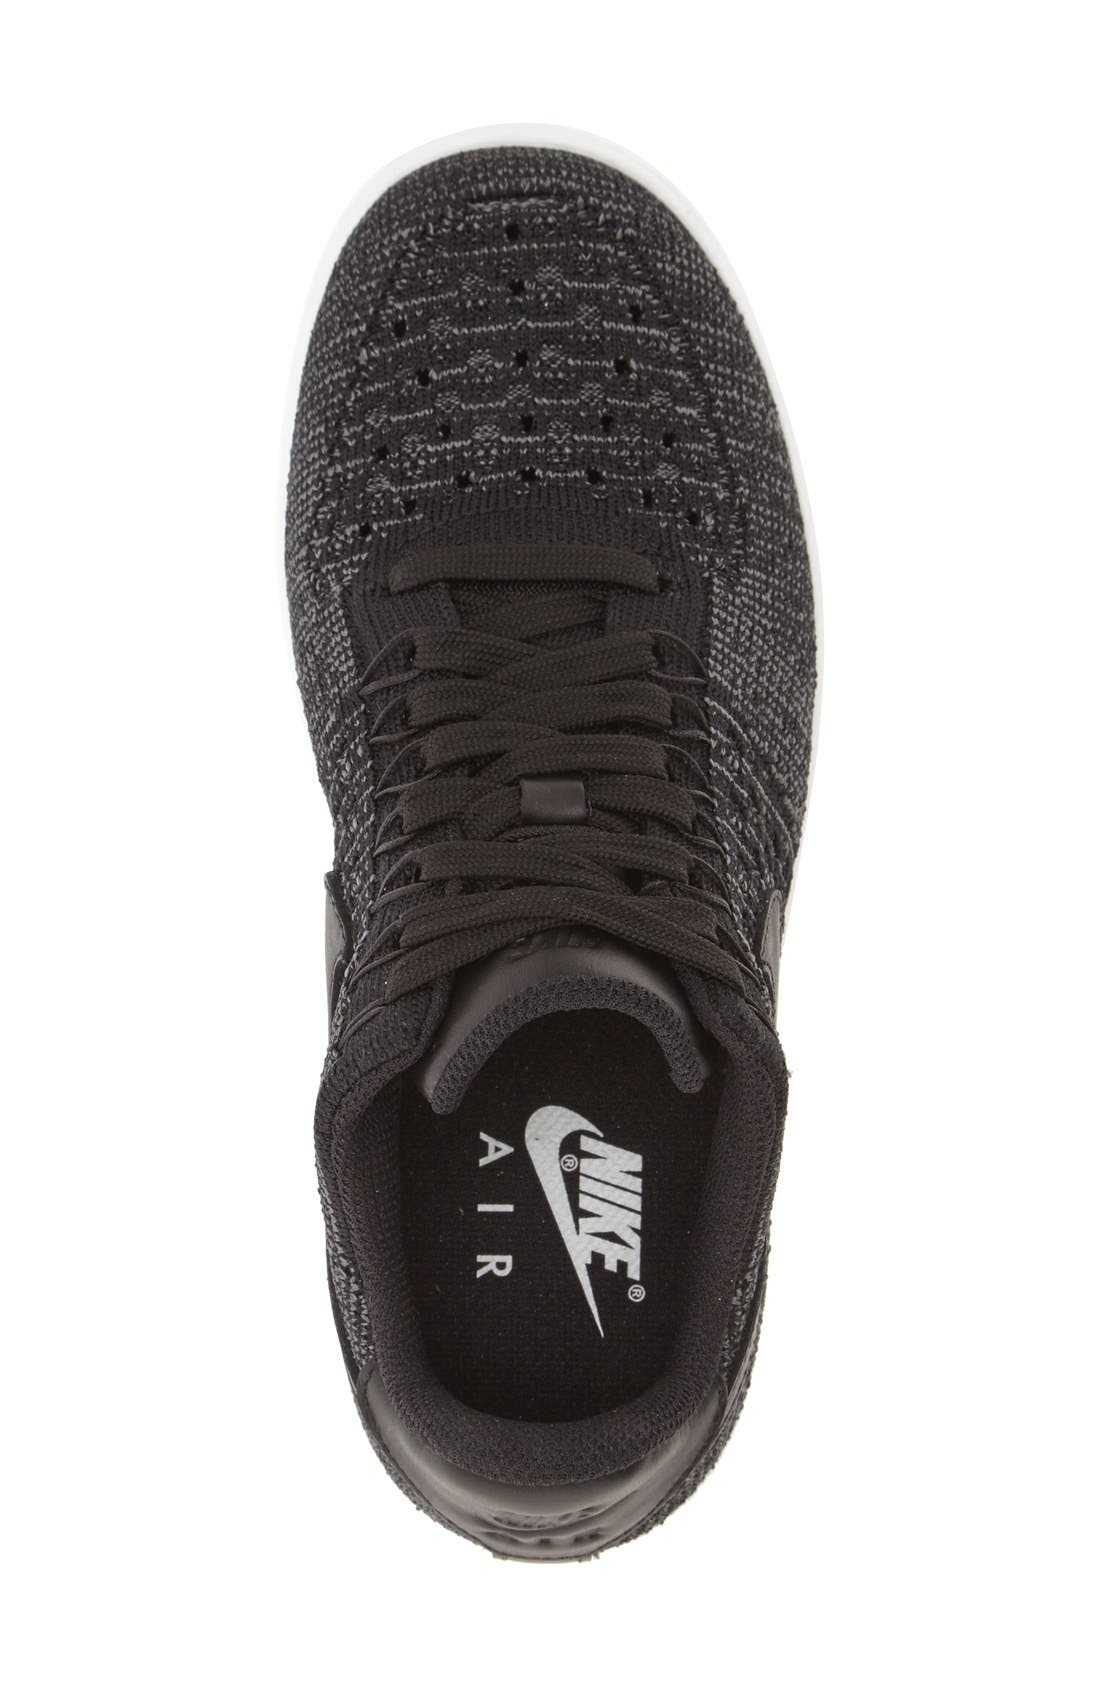 'Air Force 1 Flyknit Low' Sneaker,                             Alternate thumbnail 3, color,                             Black/ Black/ White